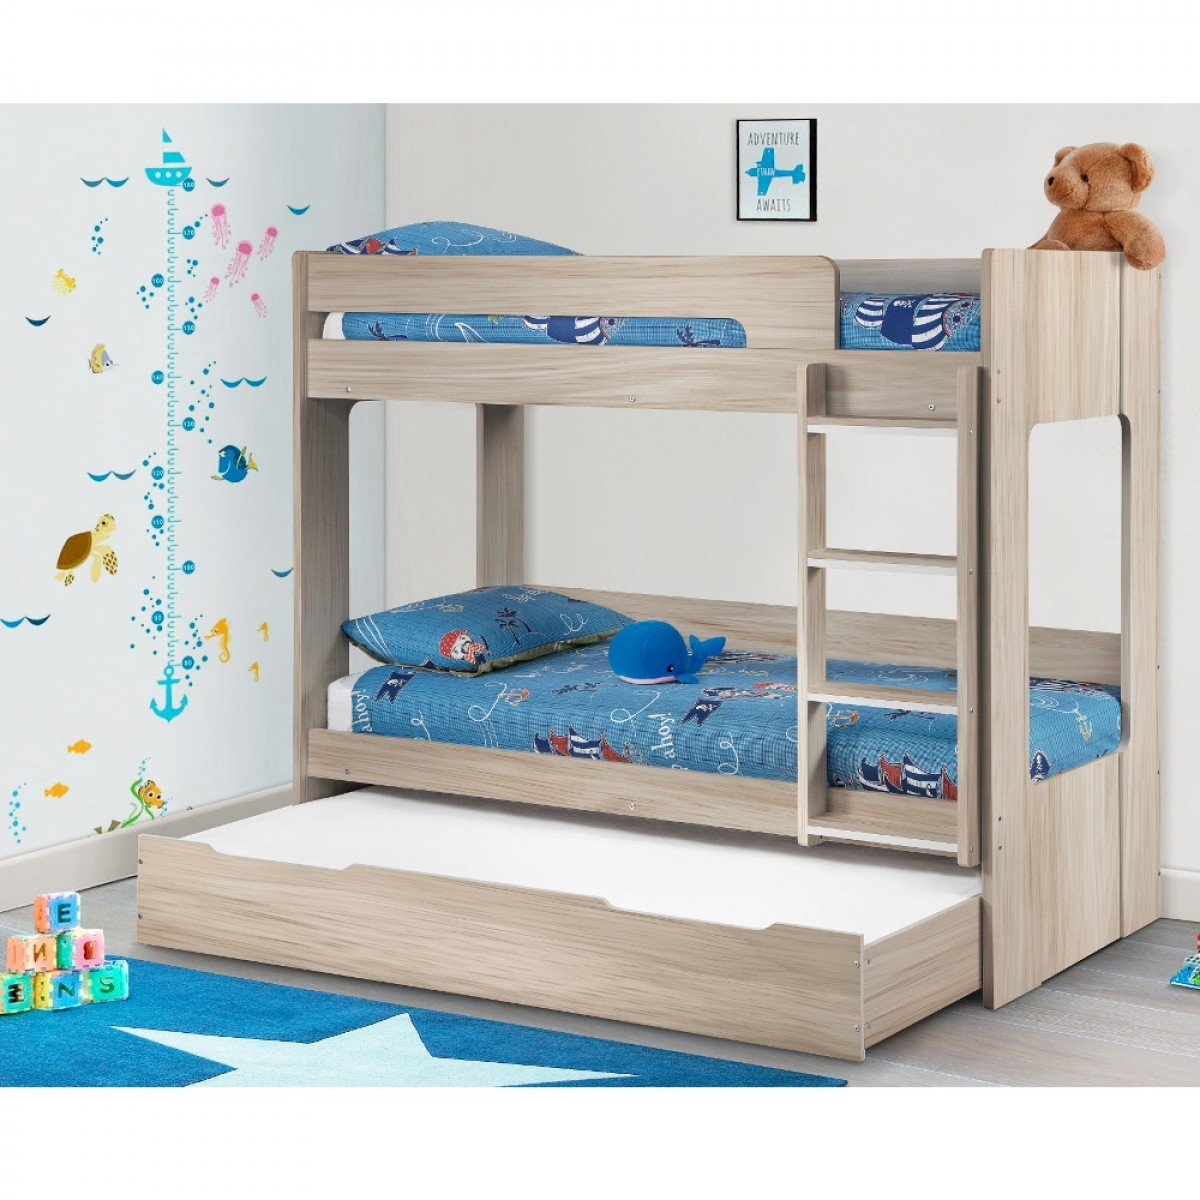 Ellie Oak Wooden Bunk Bed and Trundle Guestbed